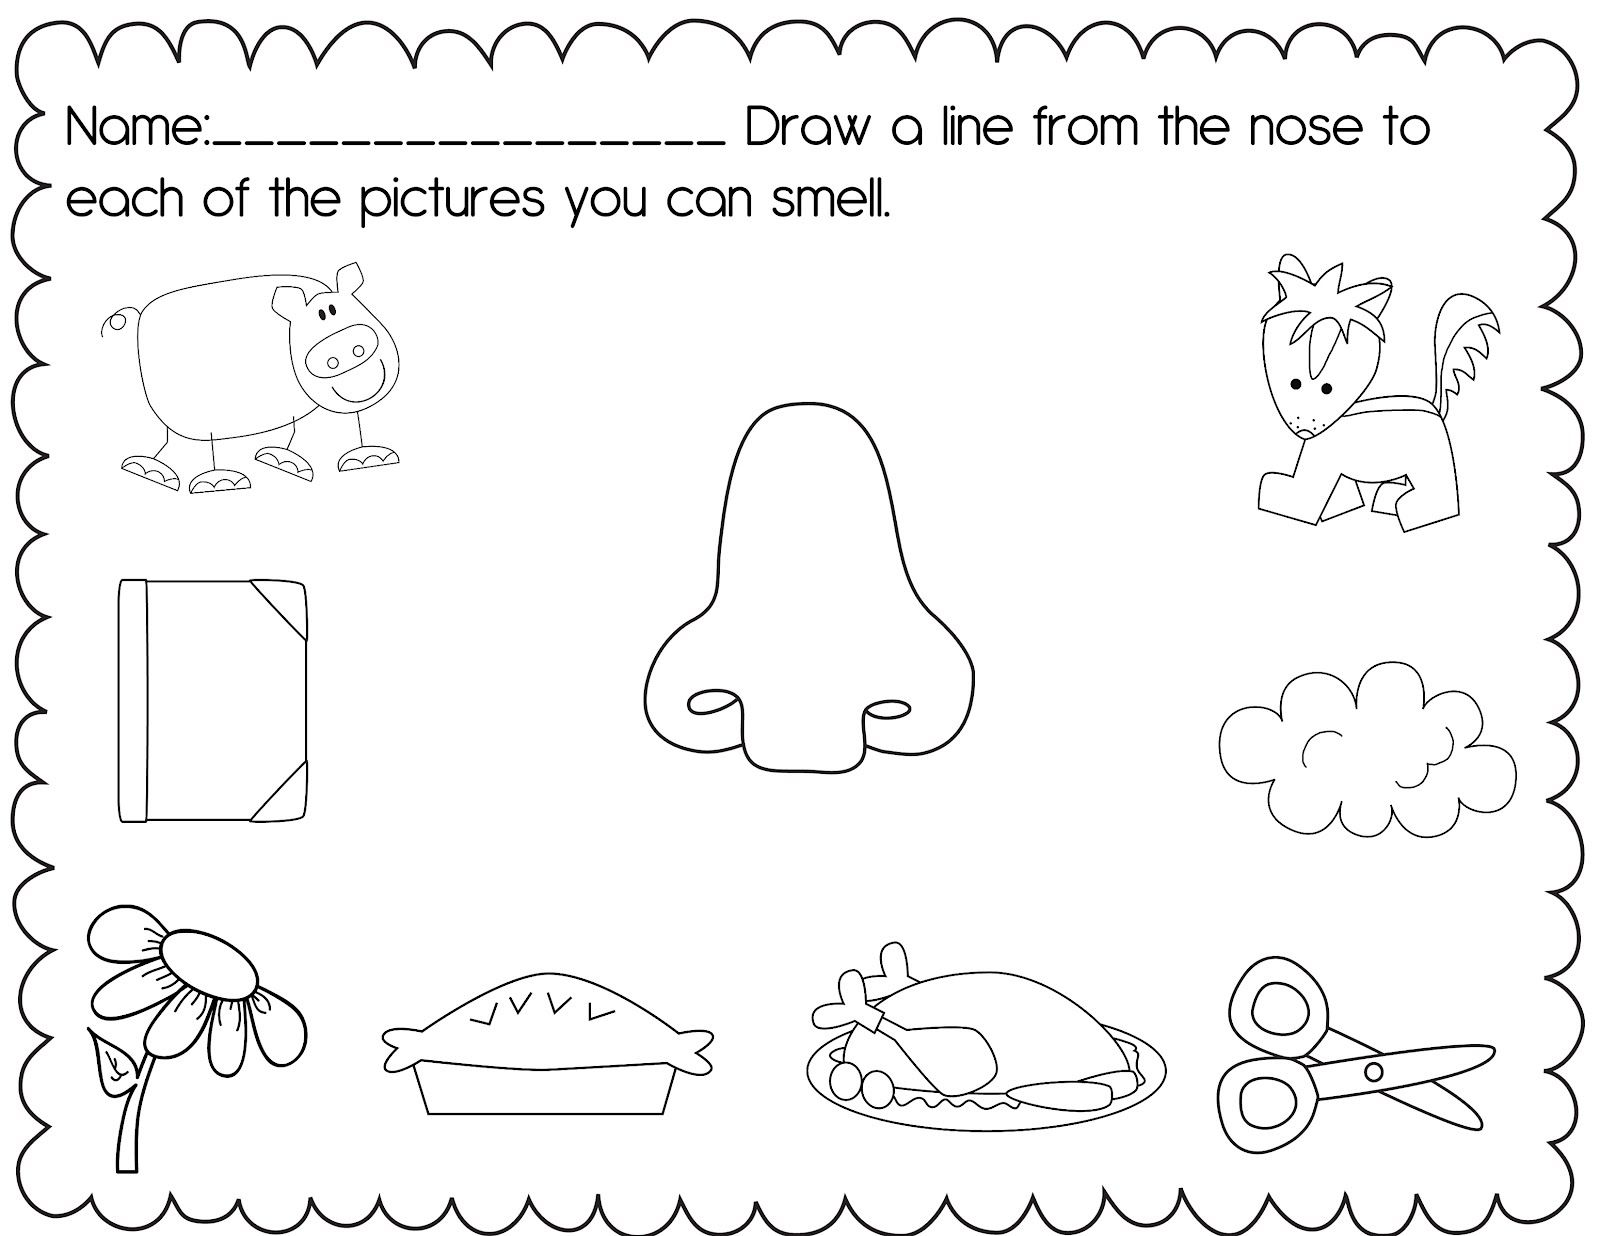 5 Senses Worksheets For Kindergarten